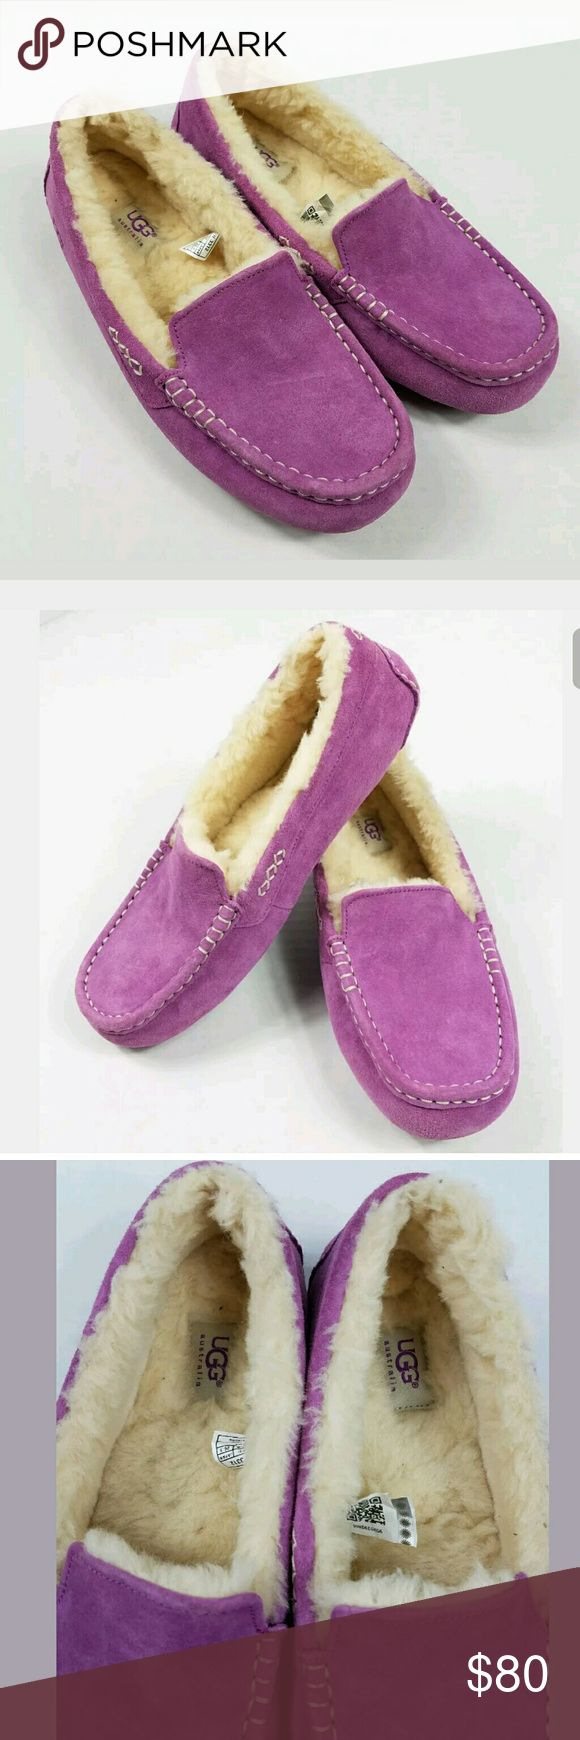 UGG Australia Ansley Purple Slipper 10M These are in good used condition. There are scuffs at the toe. UGG Shoes Slippers